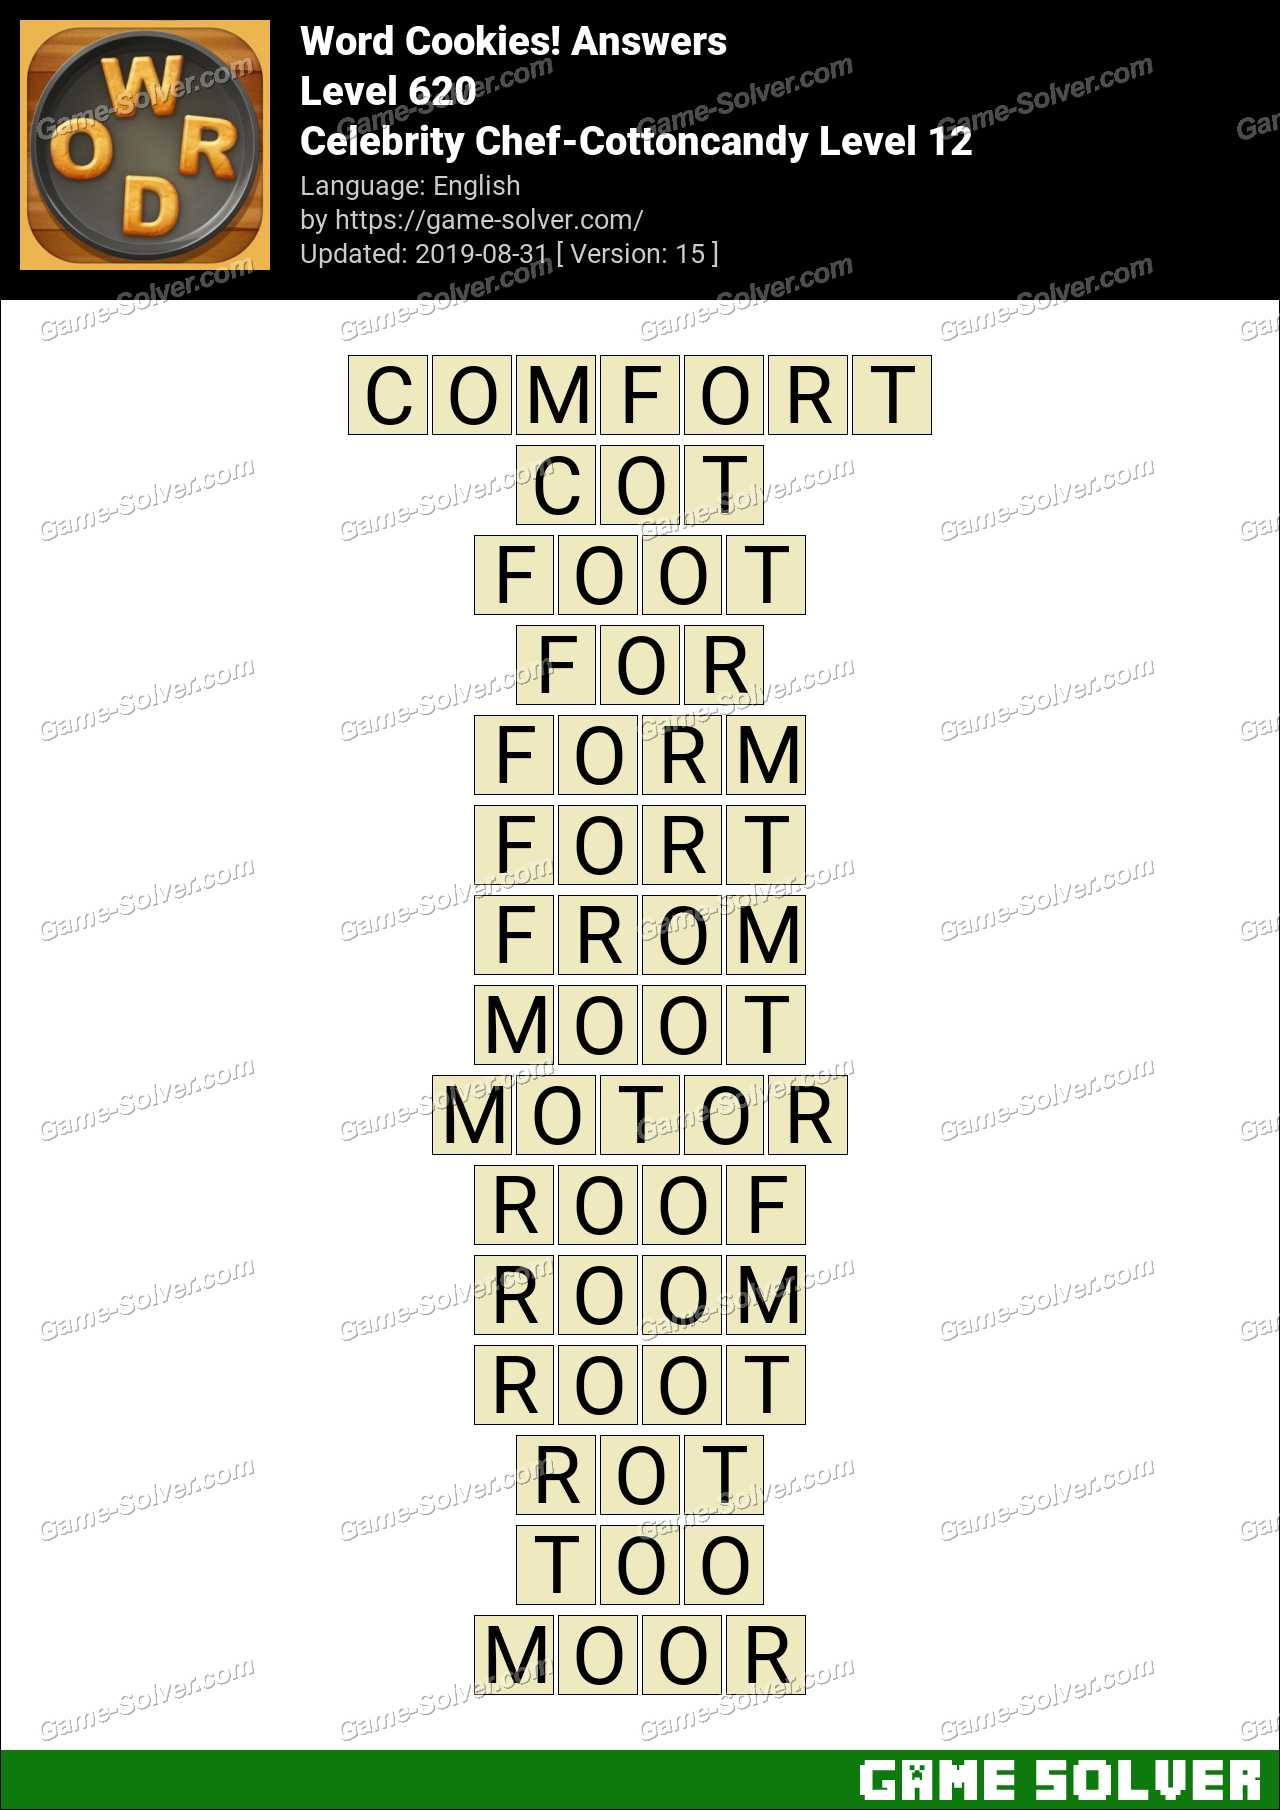 Word Cookies Celebrity Chef-Cottoncandy Level 12 Answers